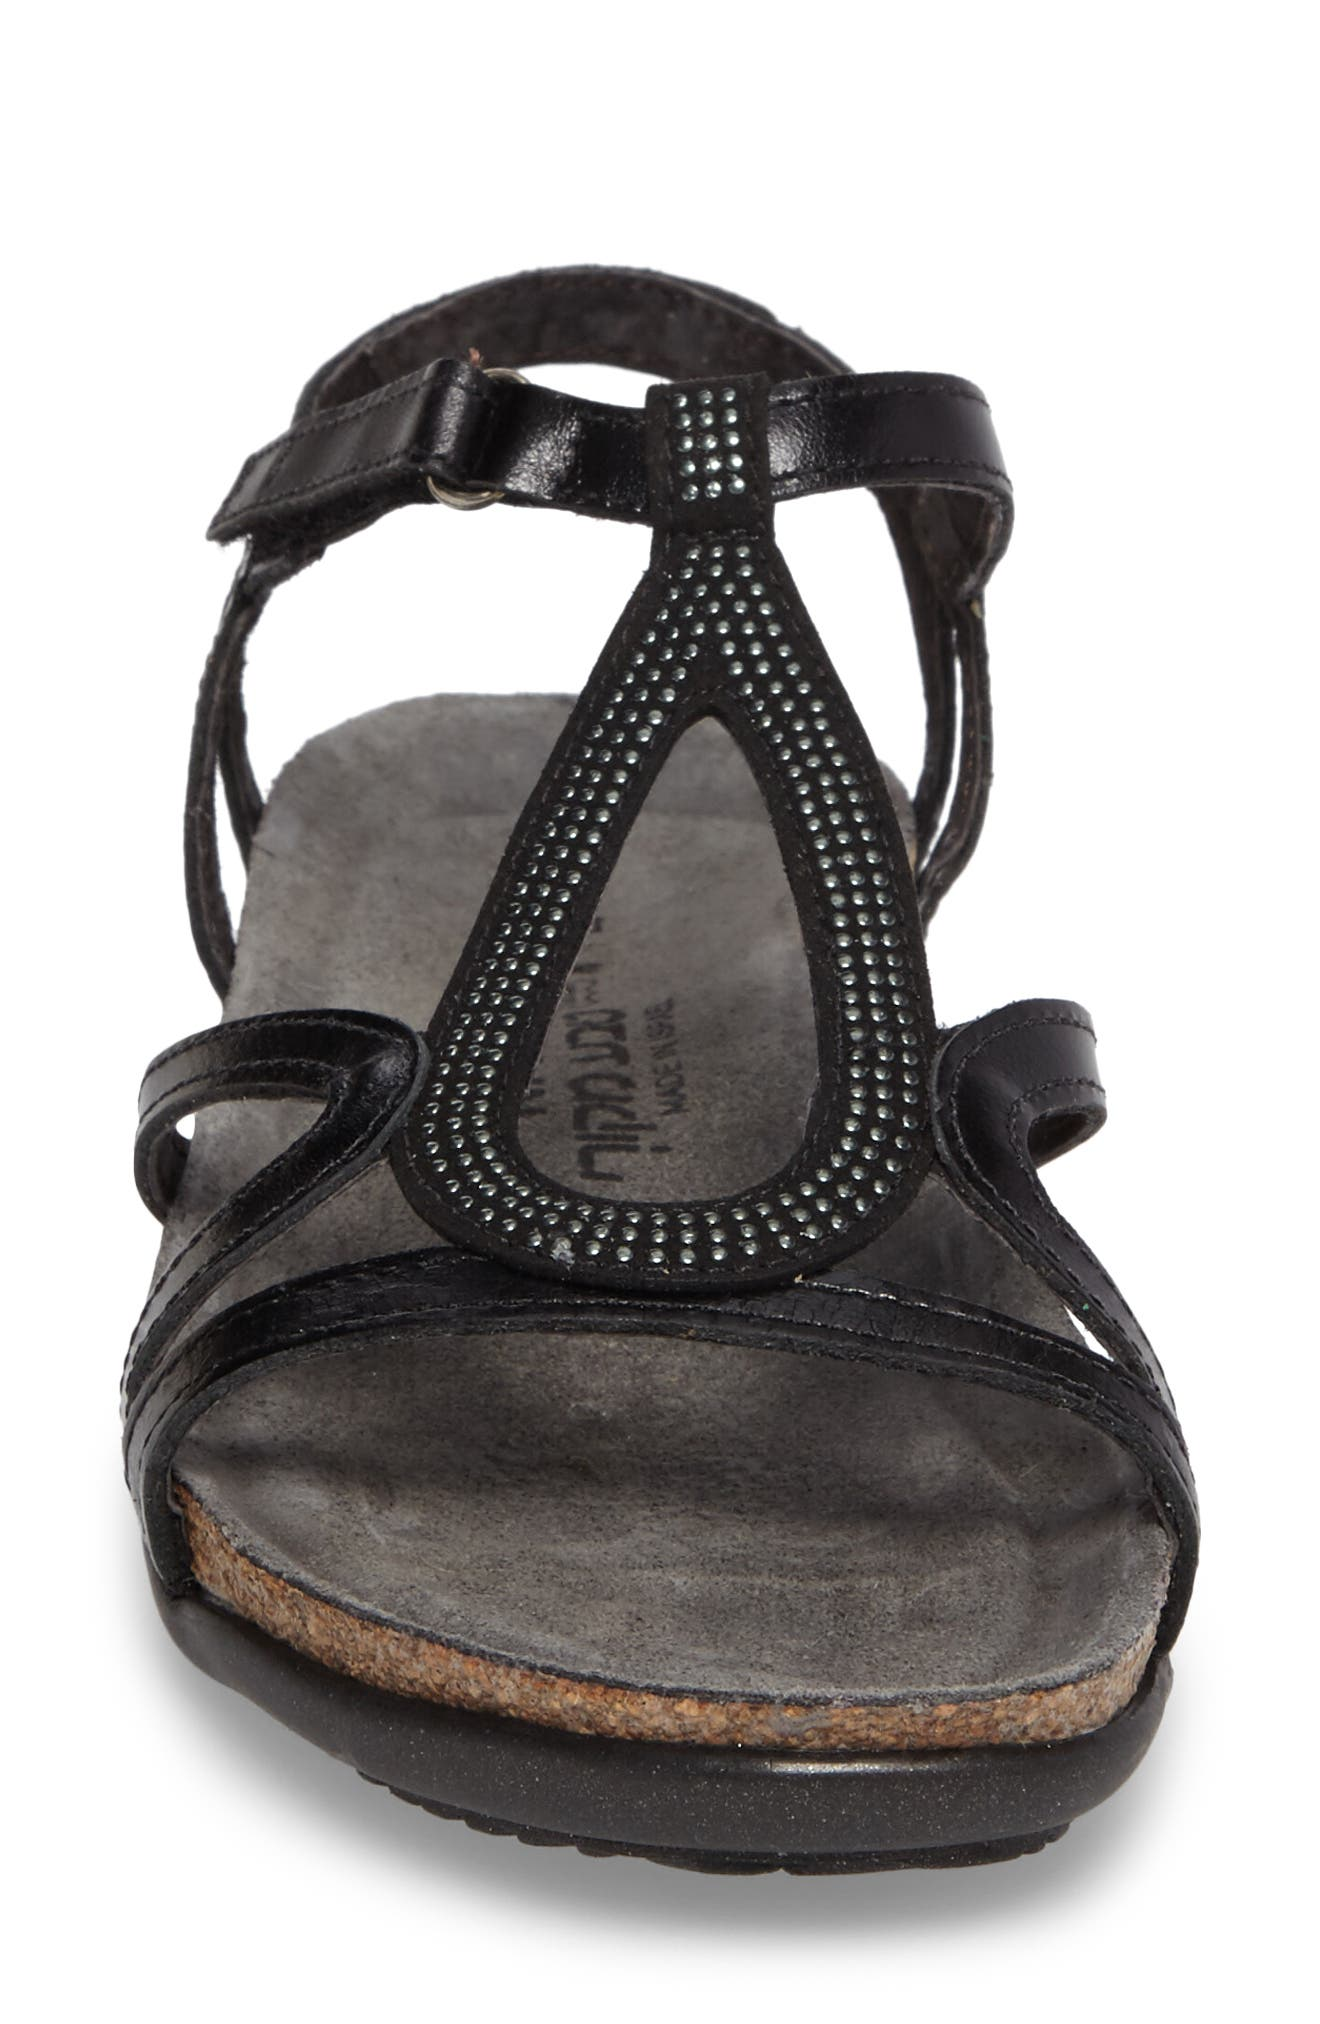 Tamara Studded Strappy Sandal,                             Alternate thumbnail 4, color,                             BLACK MADRAS LEATHER